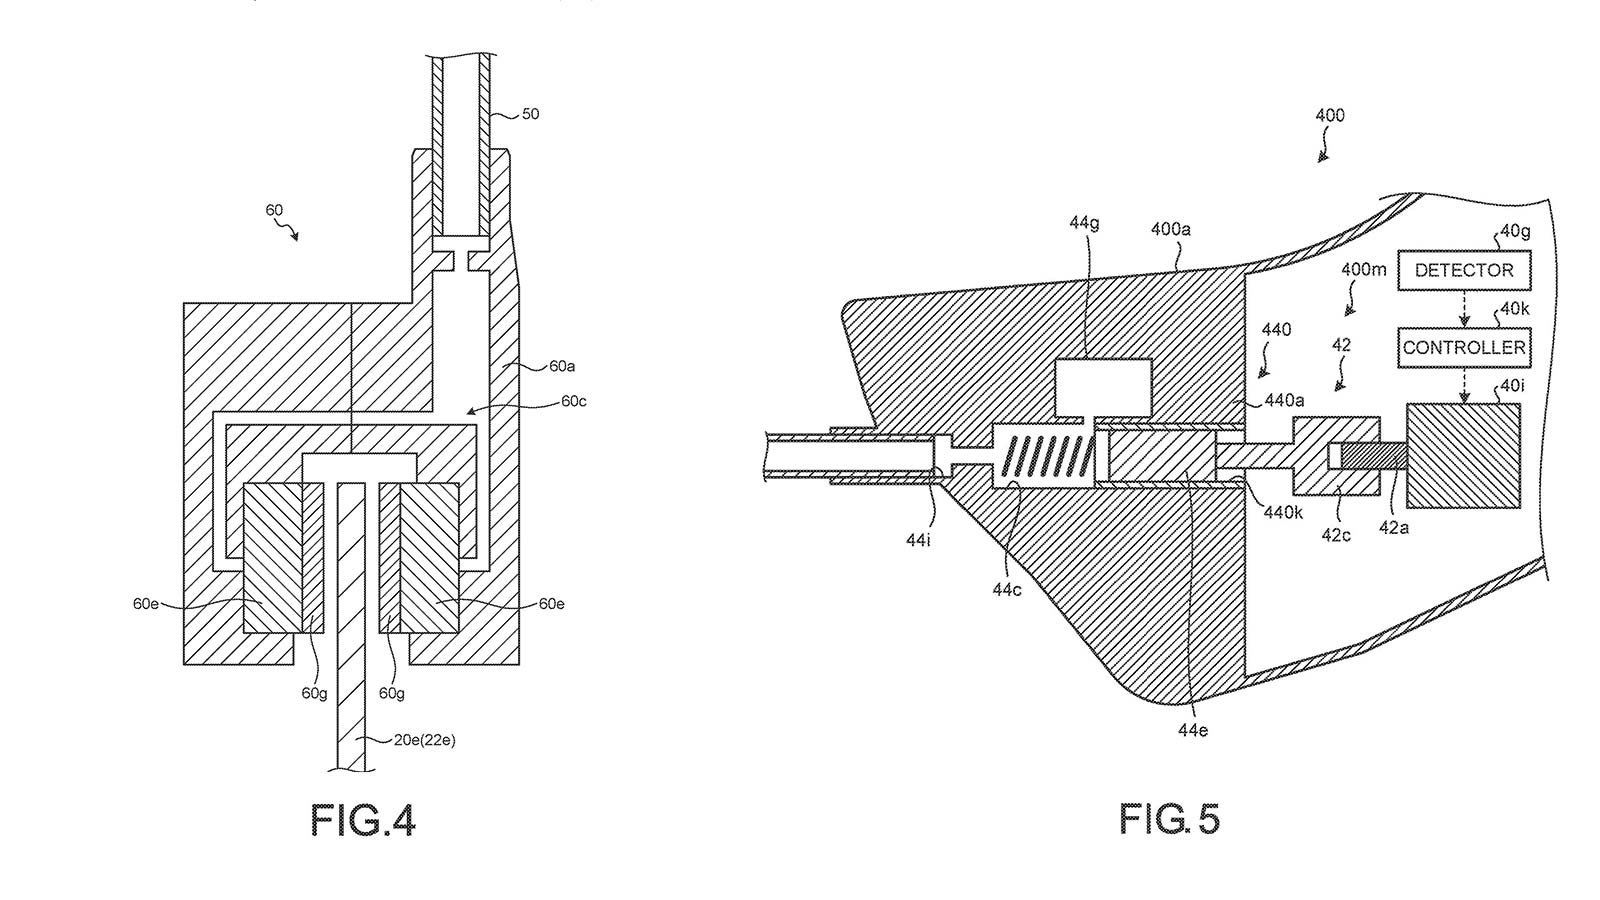 shimano electric bicycle brakes for road bikes patent drawing concept